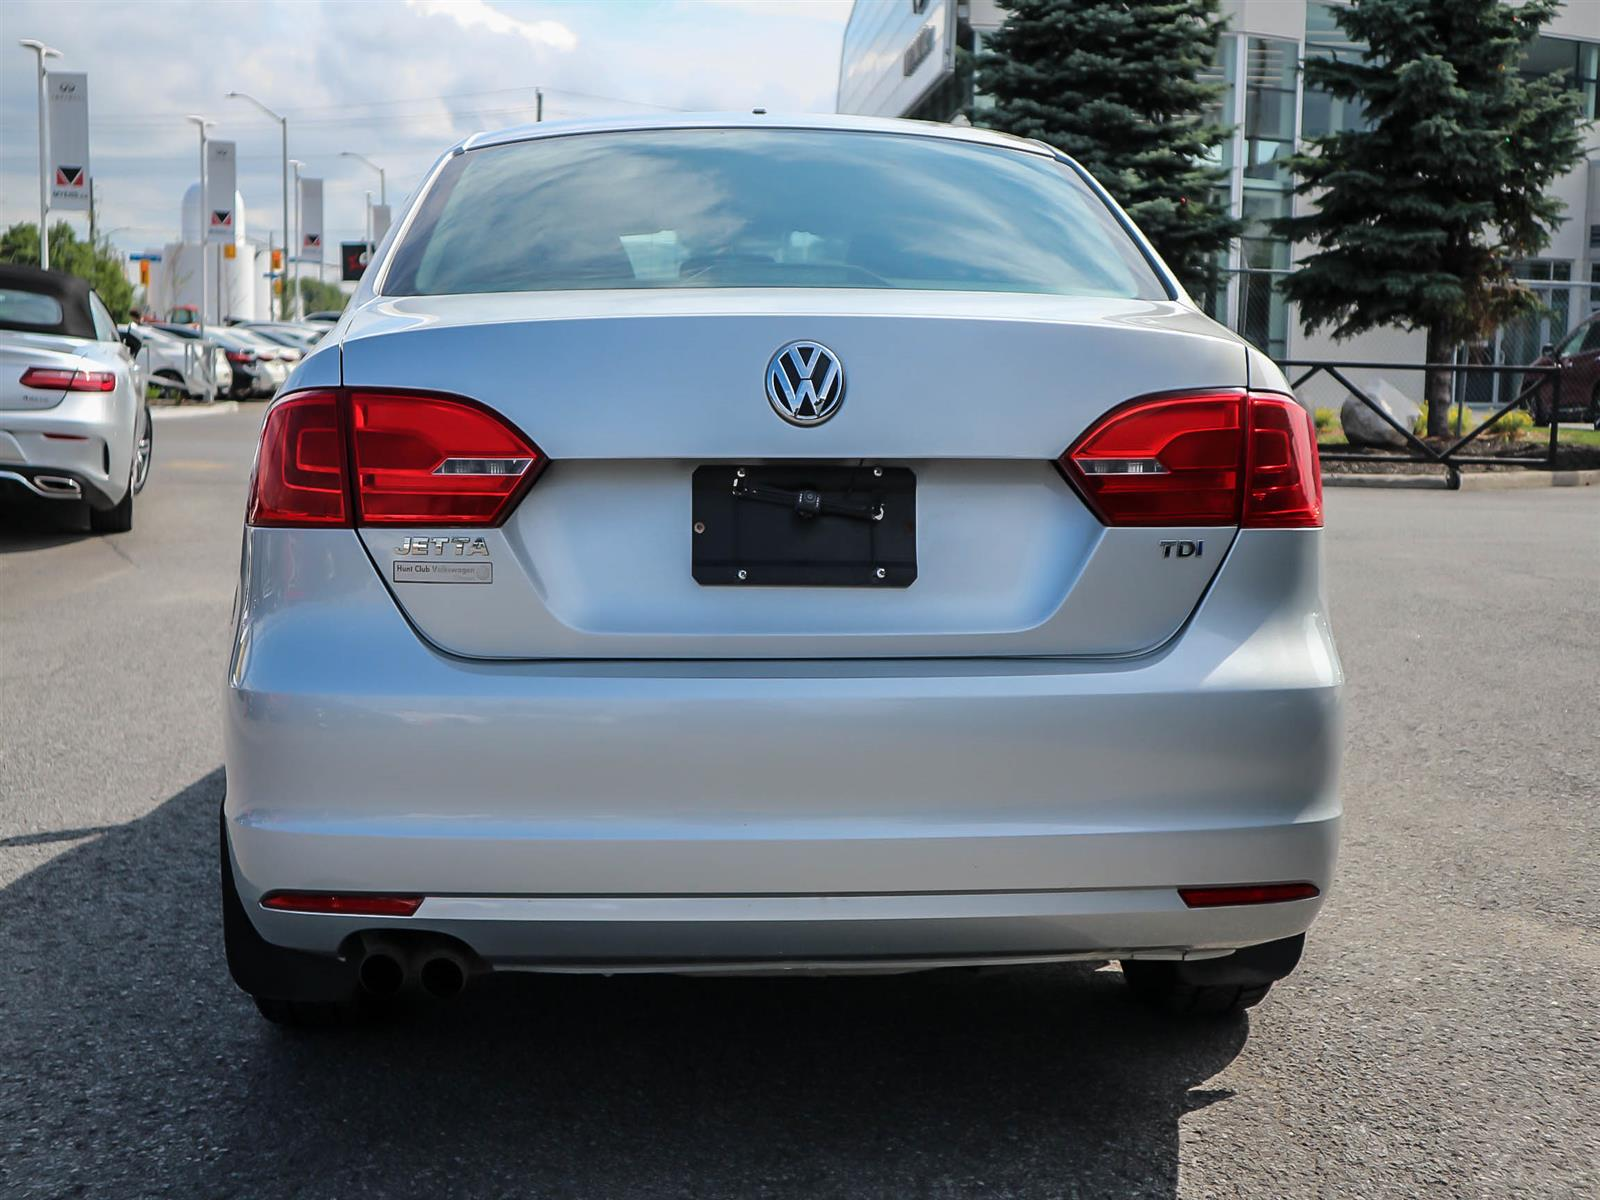 Pre-Owned 2011 Volkswagen Jetta Sedan Jetta